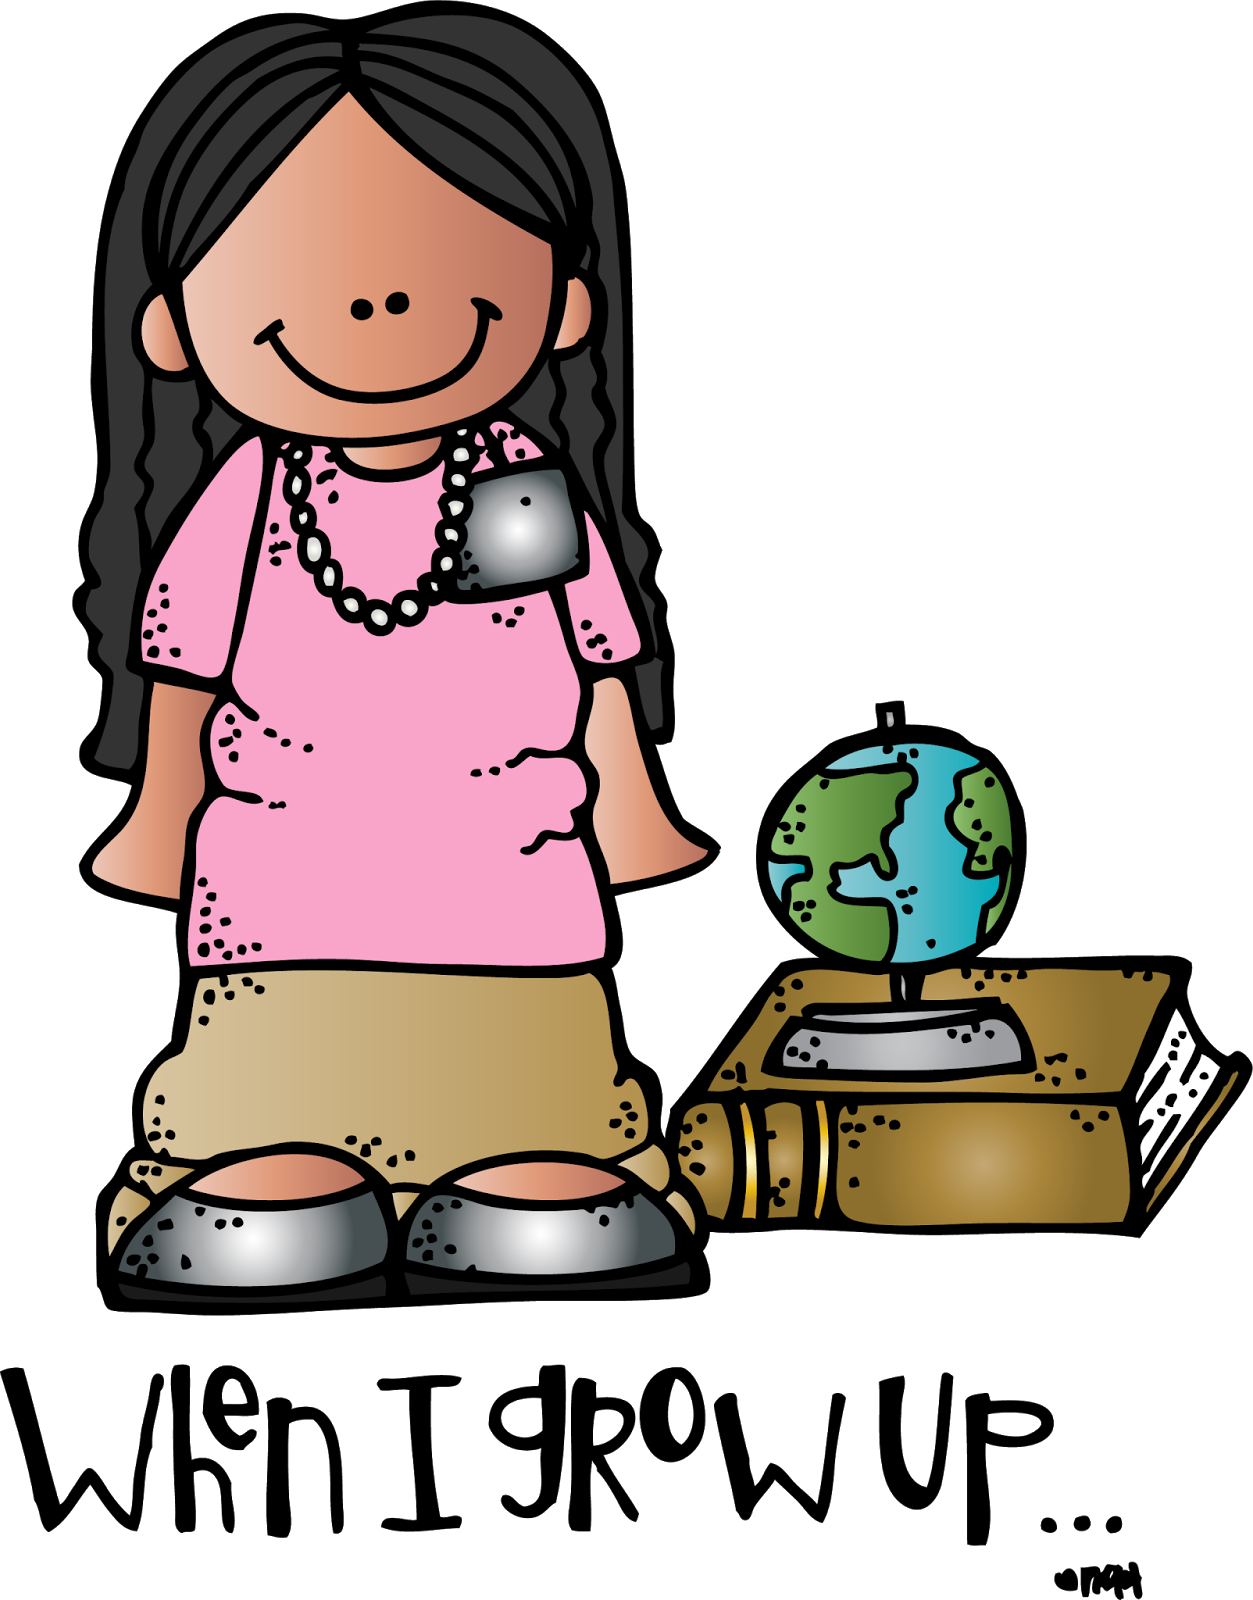 Free When Cliparts, Download Free Clip Art, Free Clip Art on.